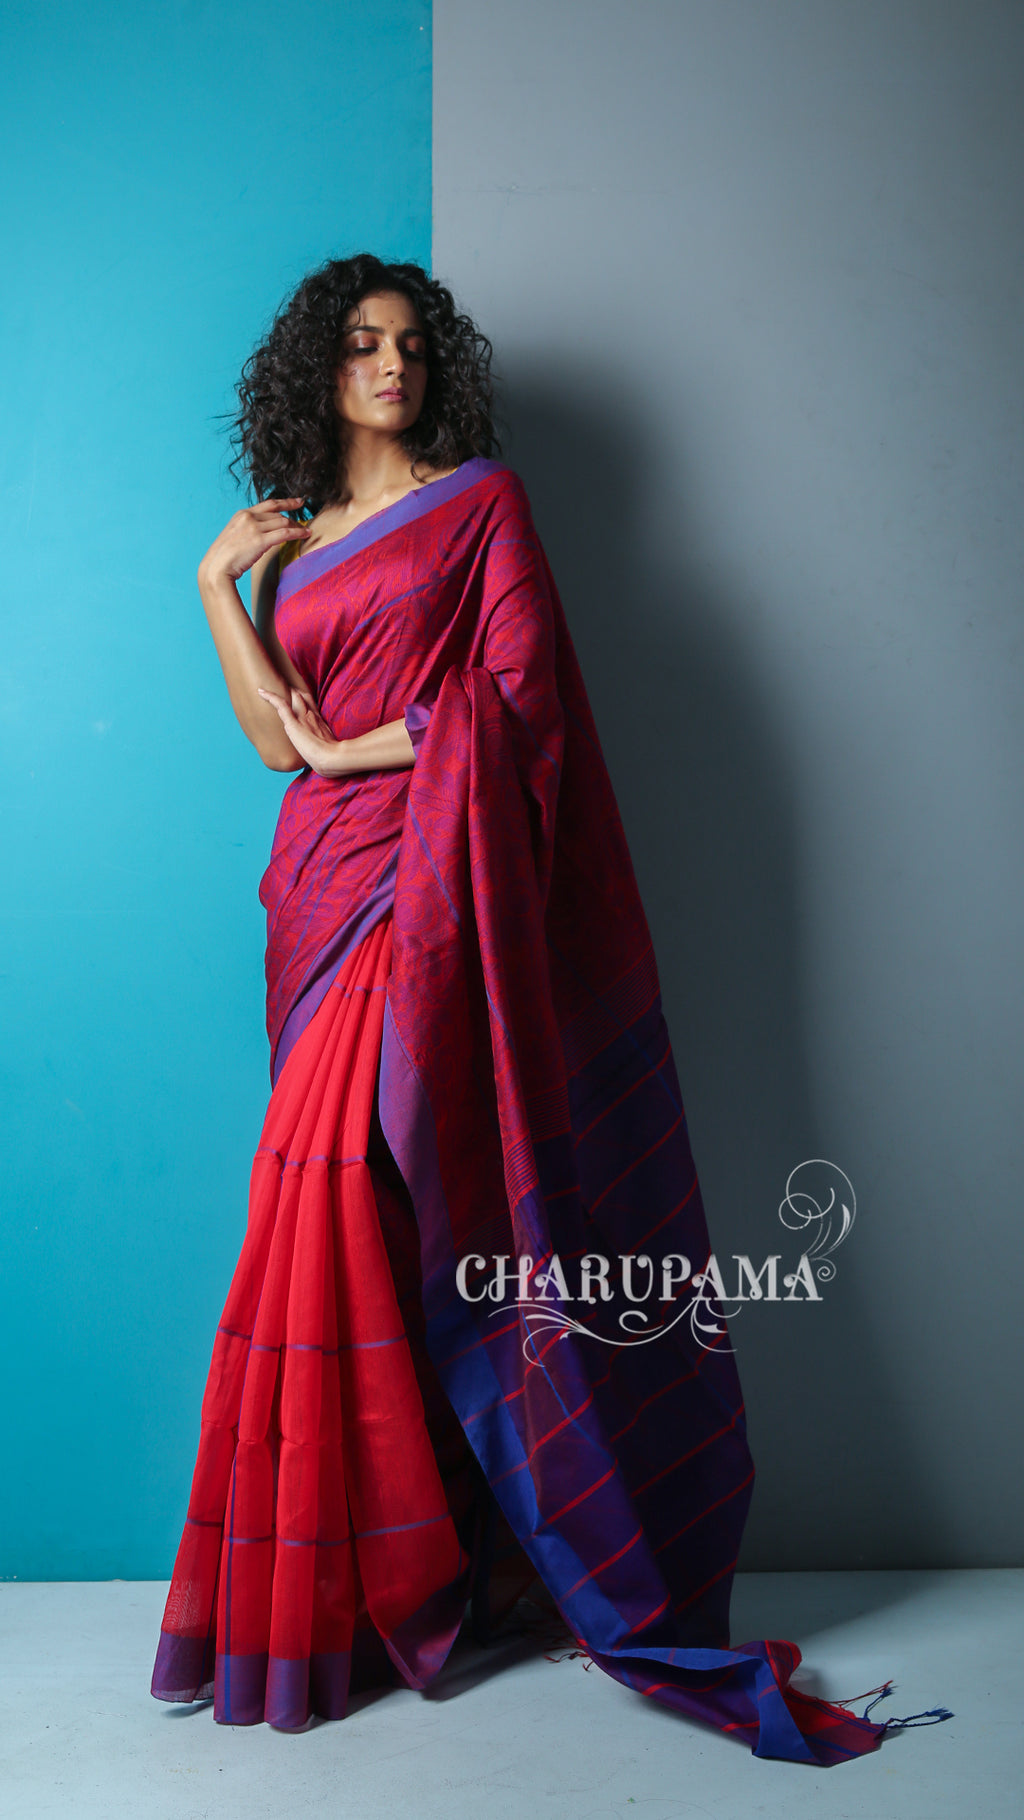 Look Beautiful In This Red Shade Handwoven Blended Silk. Is Half Plain And The Other Half Is Weaved, It Has The Comfort Factor For Daily Wear And Easy Home Care - Charupama